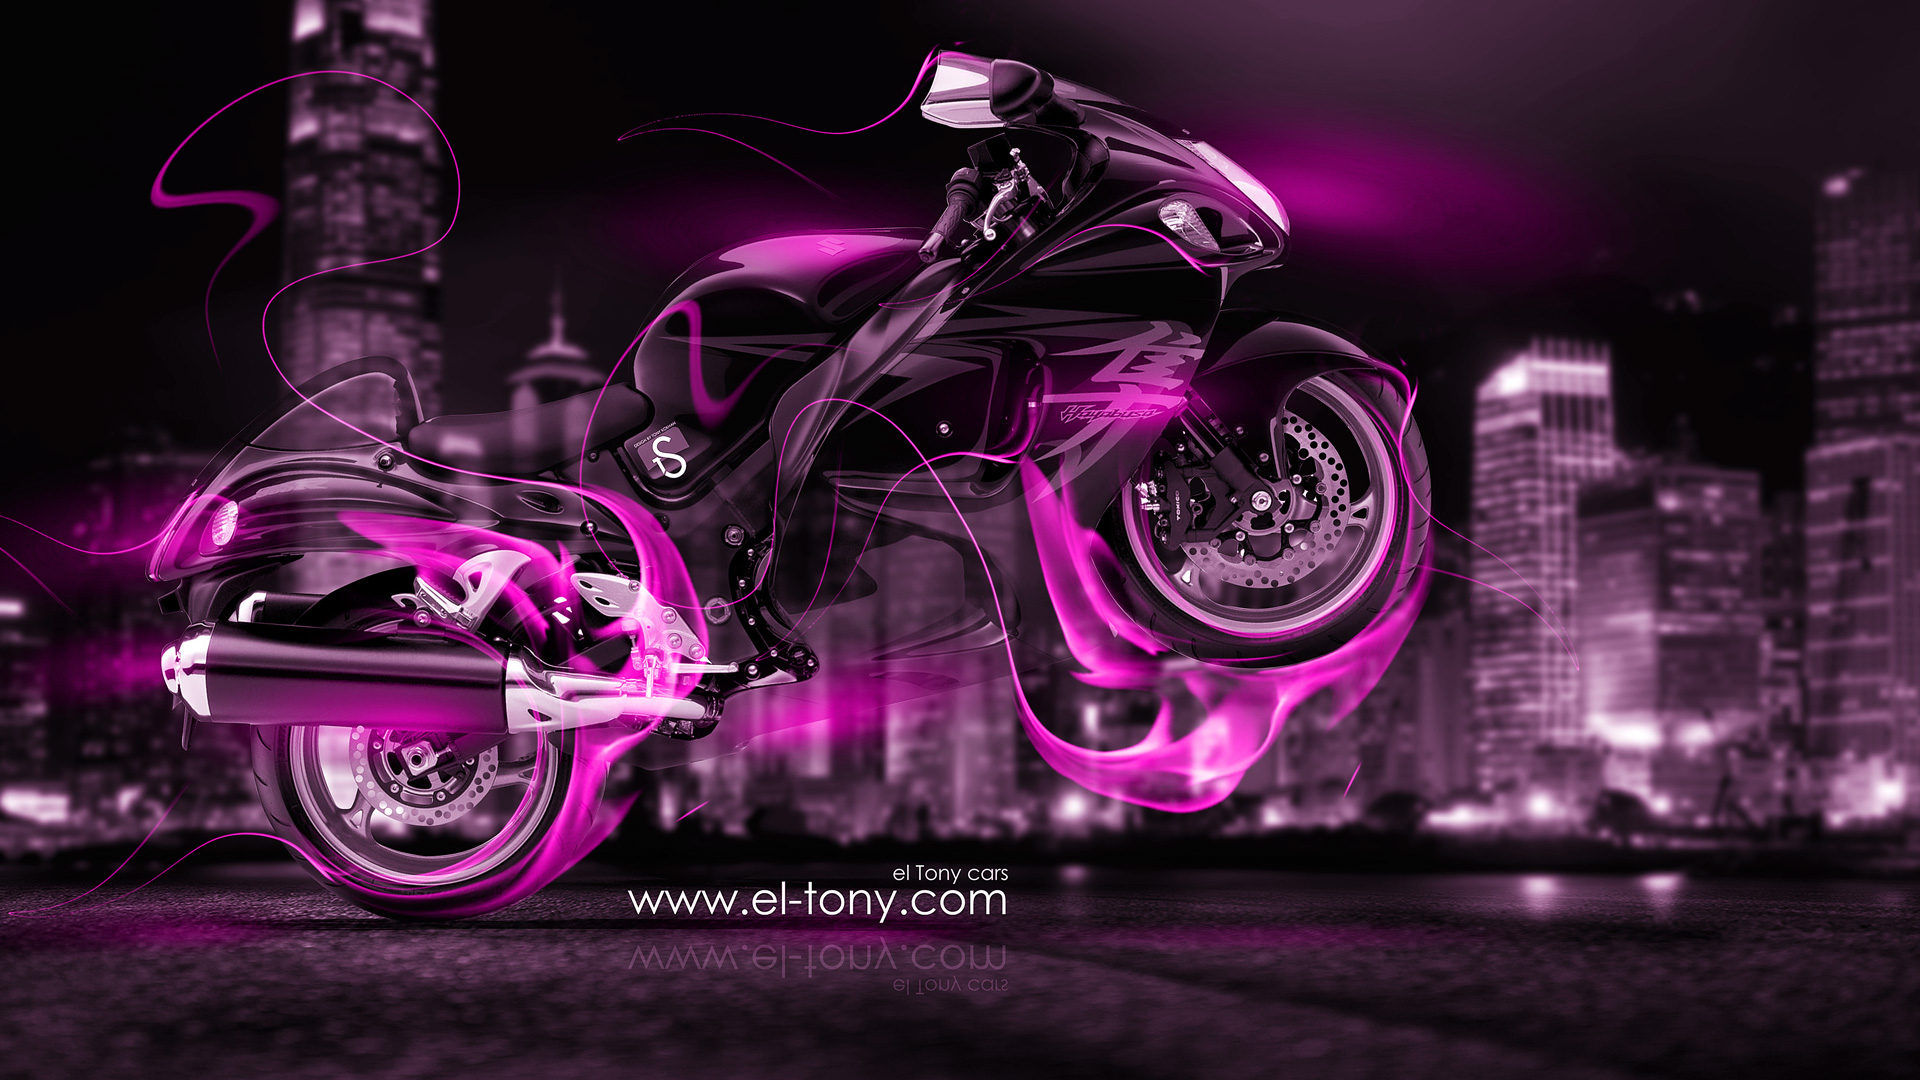 Moto Suzuki Hayabusa Pink Fire Crystal City Bike